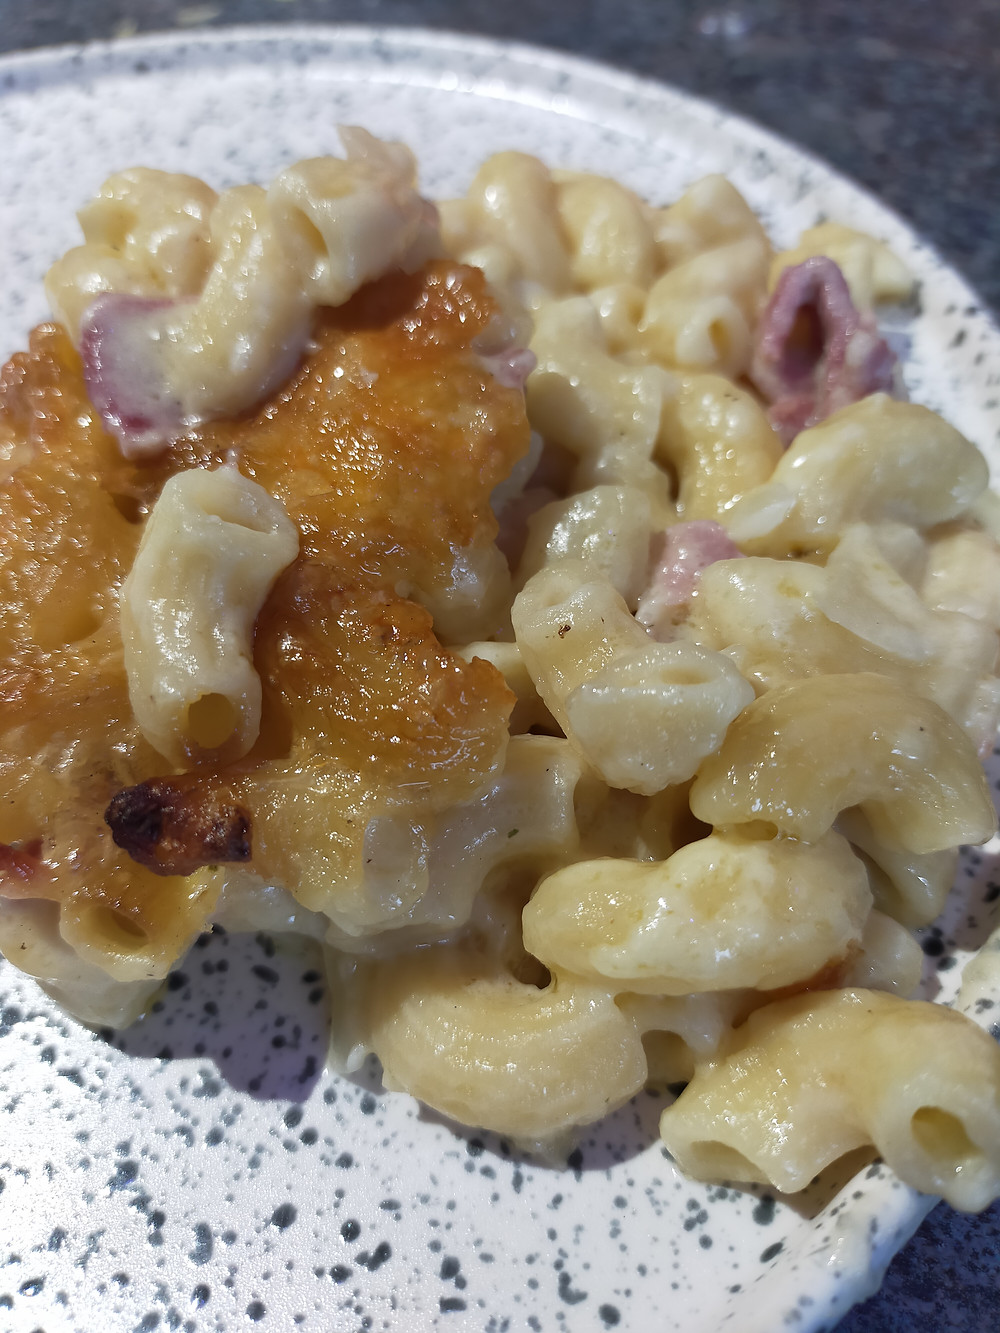 Mac n Cheese cooked in a wood fired outdoor oven tastes so good, the extra flavoring takes it to the next level.